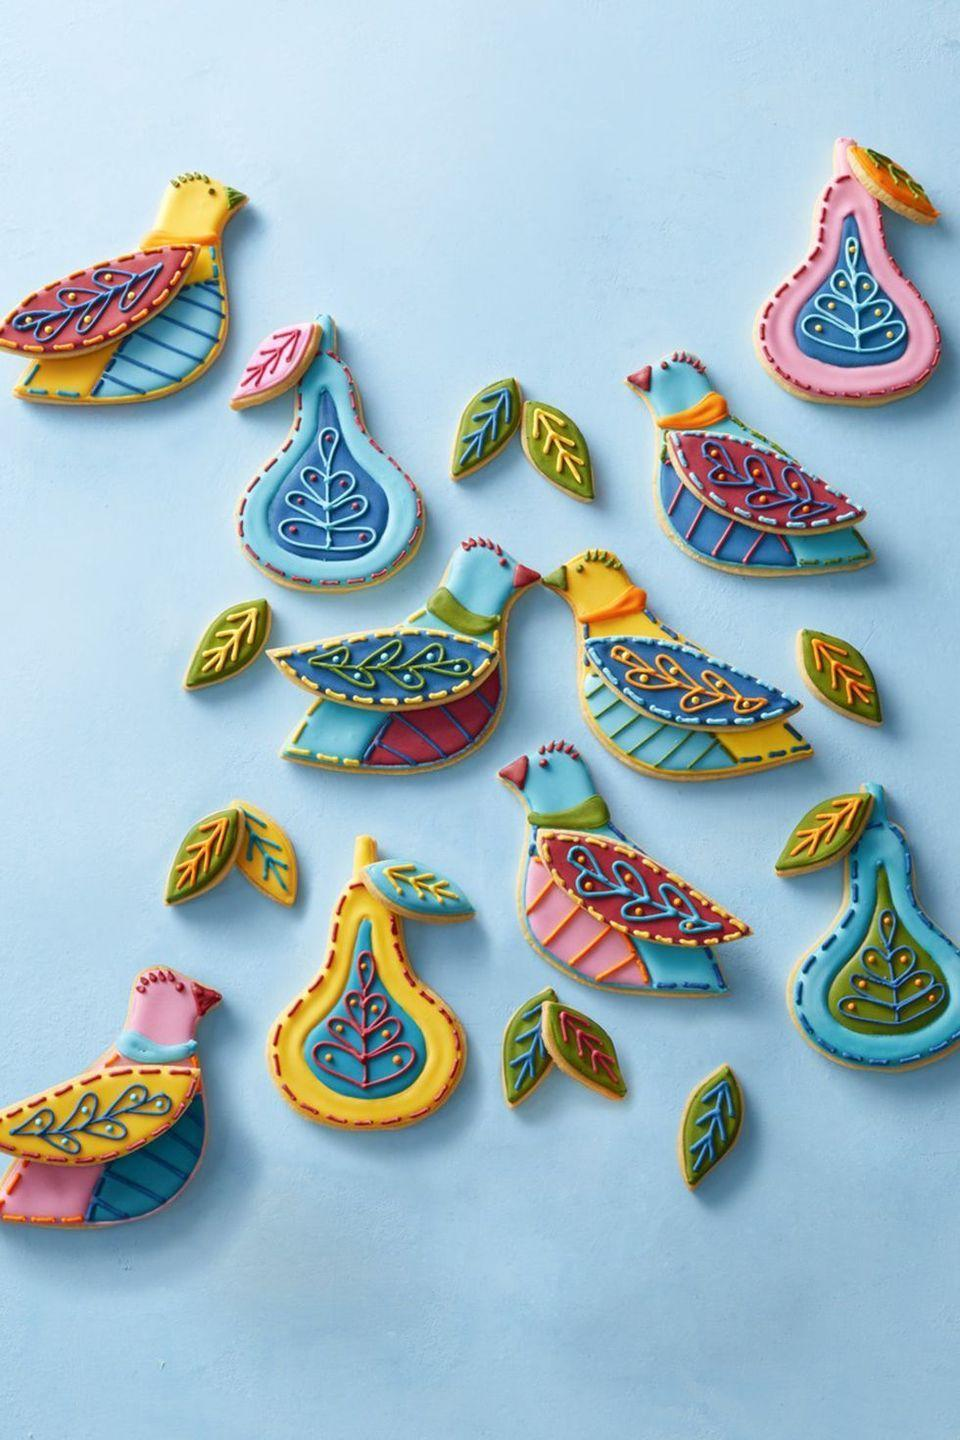 "<p>On the first (or any day) of Christmas, give your true love a plate of colorful cookies.</p><p><em><a href=""https://www.womansday.com/food-recipes/food-drinks/a25181508/partridge-cookies-recipe/"" rel=""nofollow noopener"" target=""_blank"" data-ylk=""slk:Get the recipe from Woman's Day »"" class=""link rapid-noclick-resp"">Get the recipe from Woman's Day »</a></em></p>"